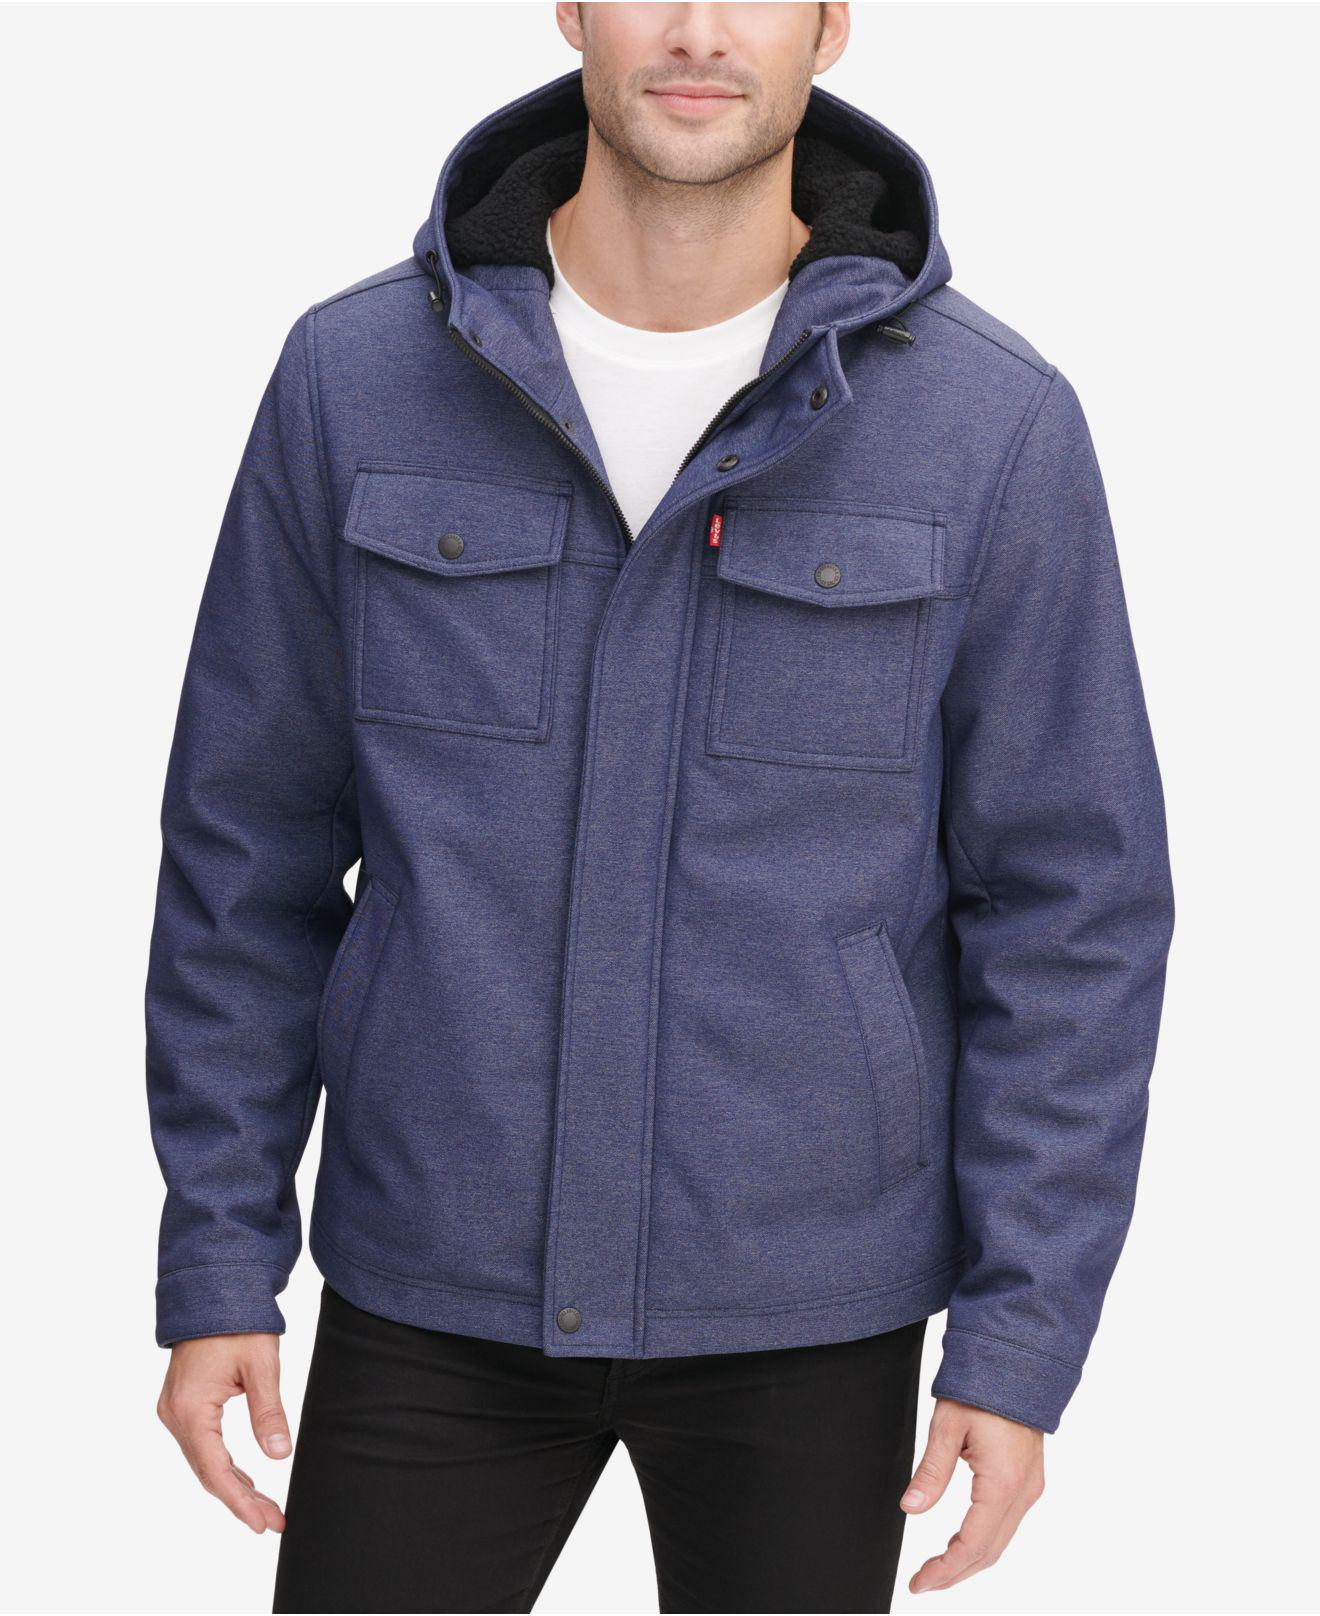 d1bde92fcce Levis denim blue soft shell hooded trucker jacket with sherpa fleece lining  jpg 1320x1616 Levis fleece